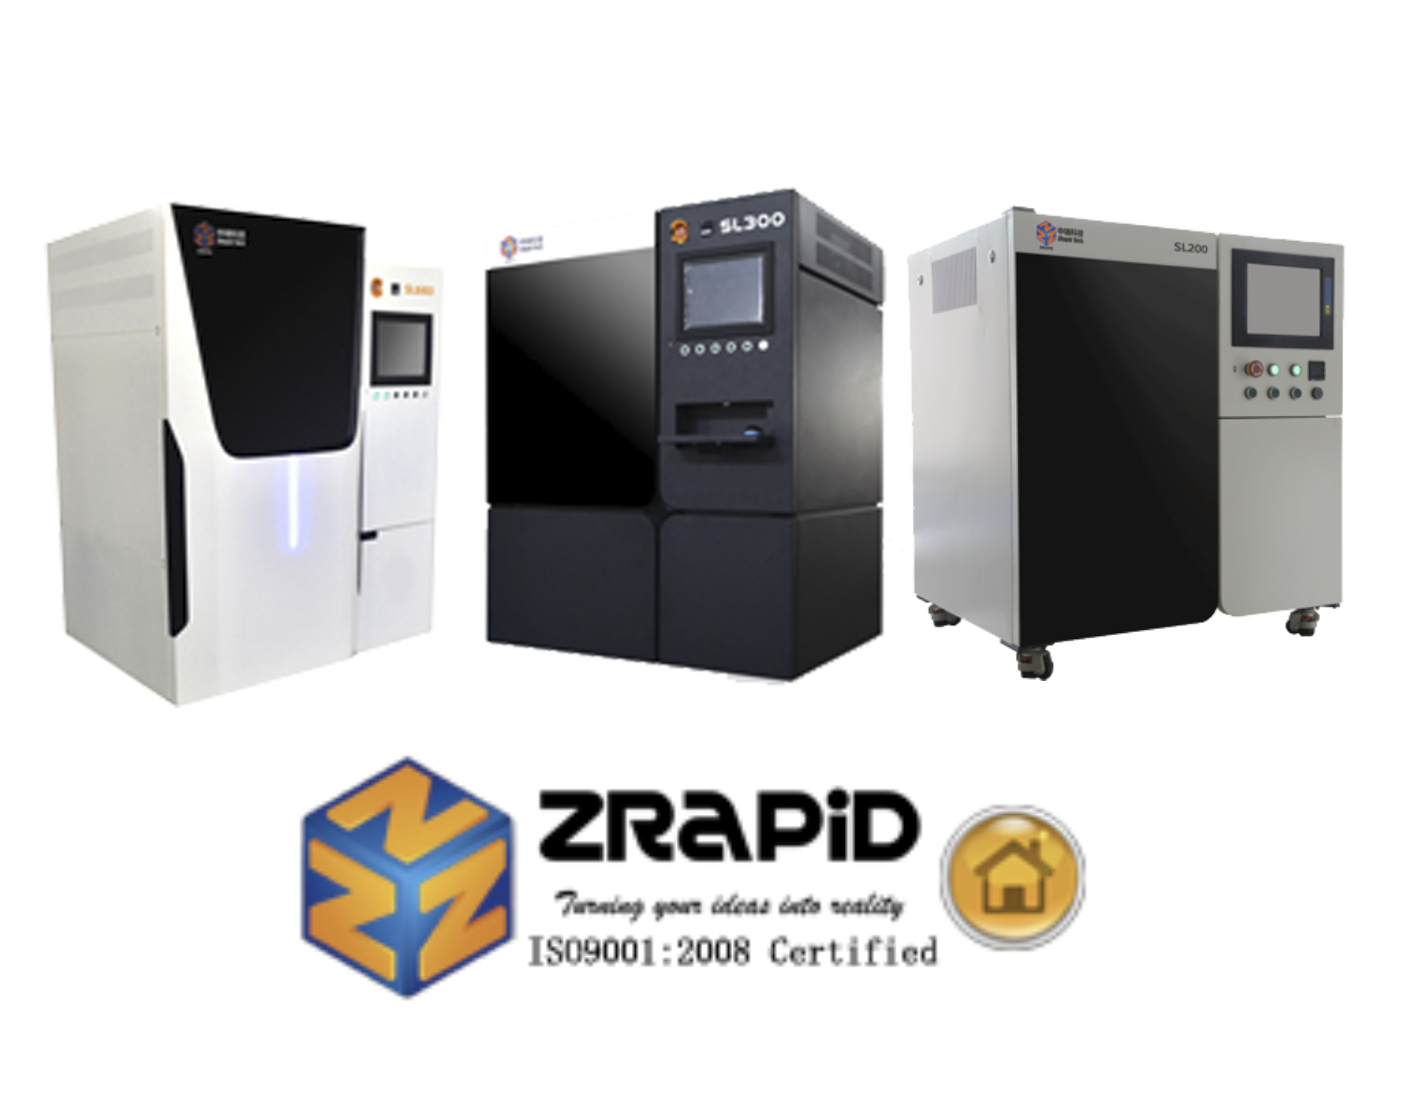 Who is Zrapid Tech and Why Don't You Know About Them?